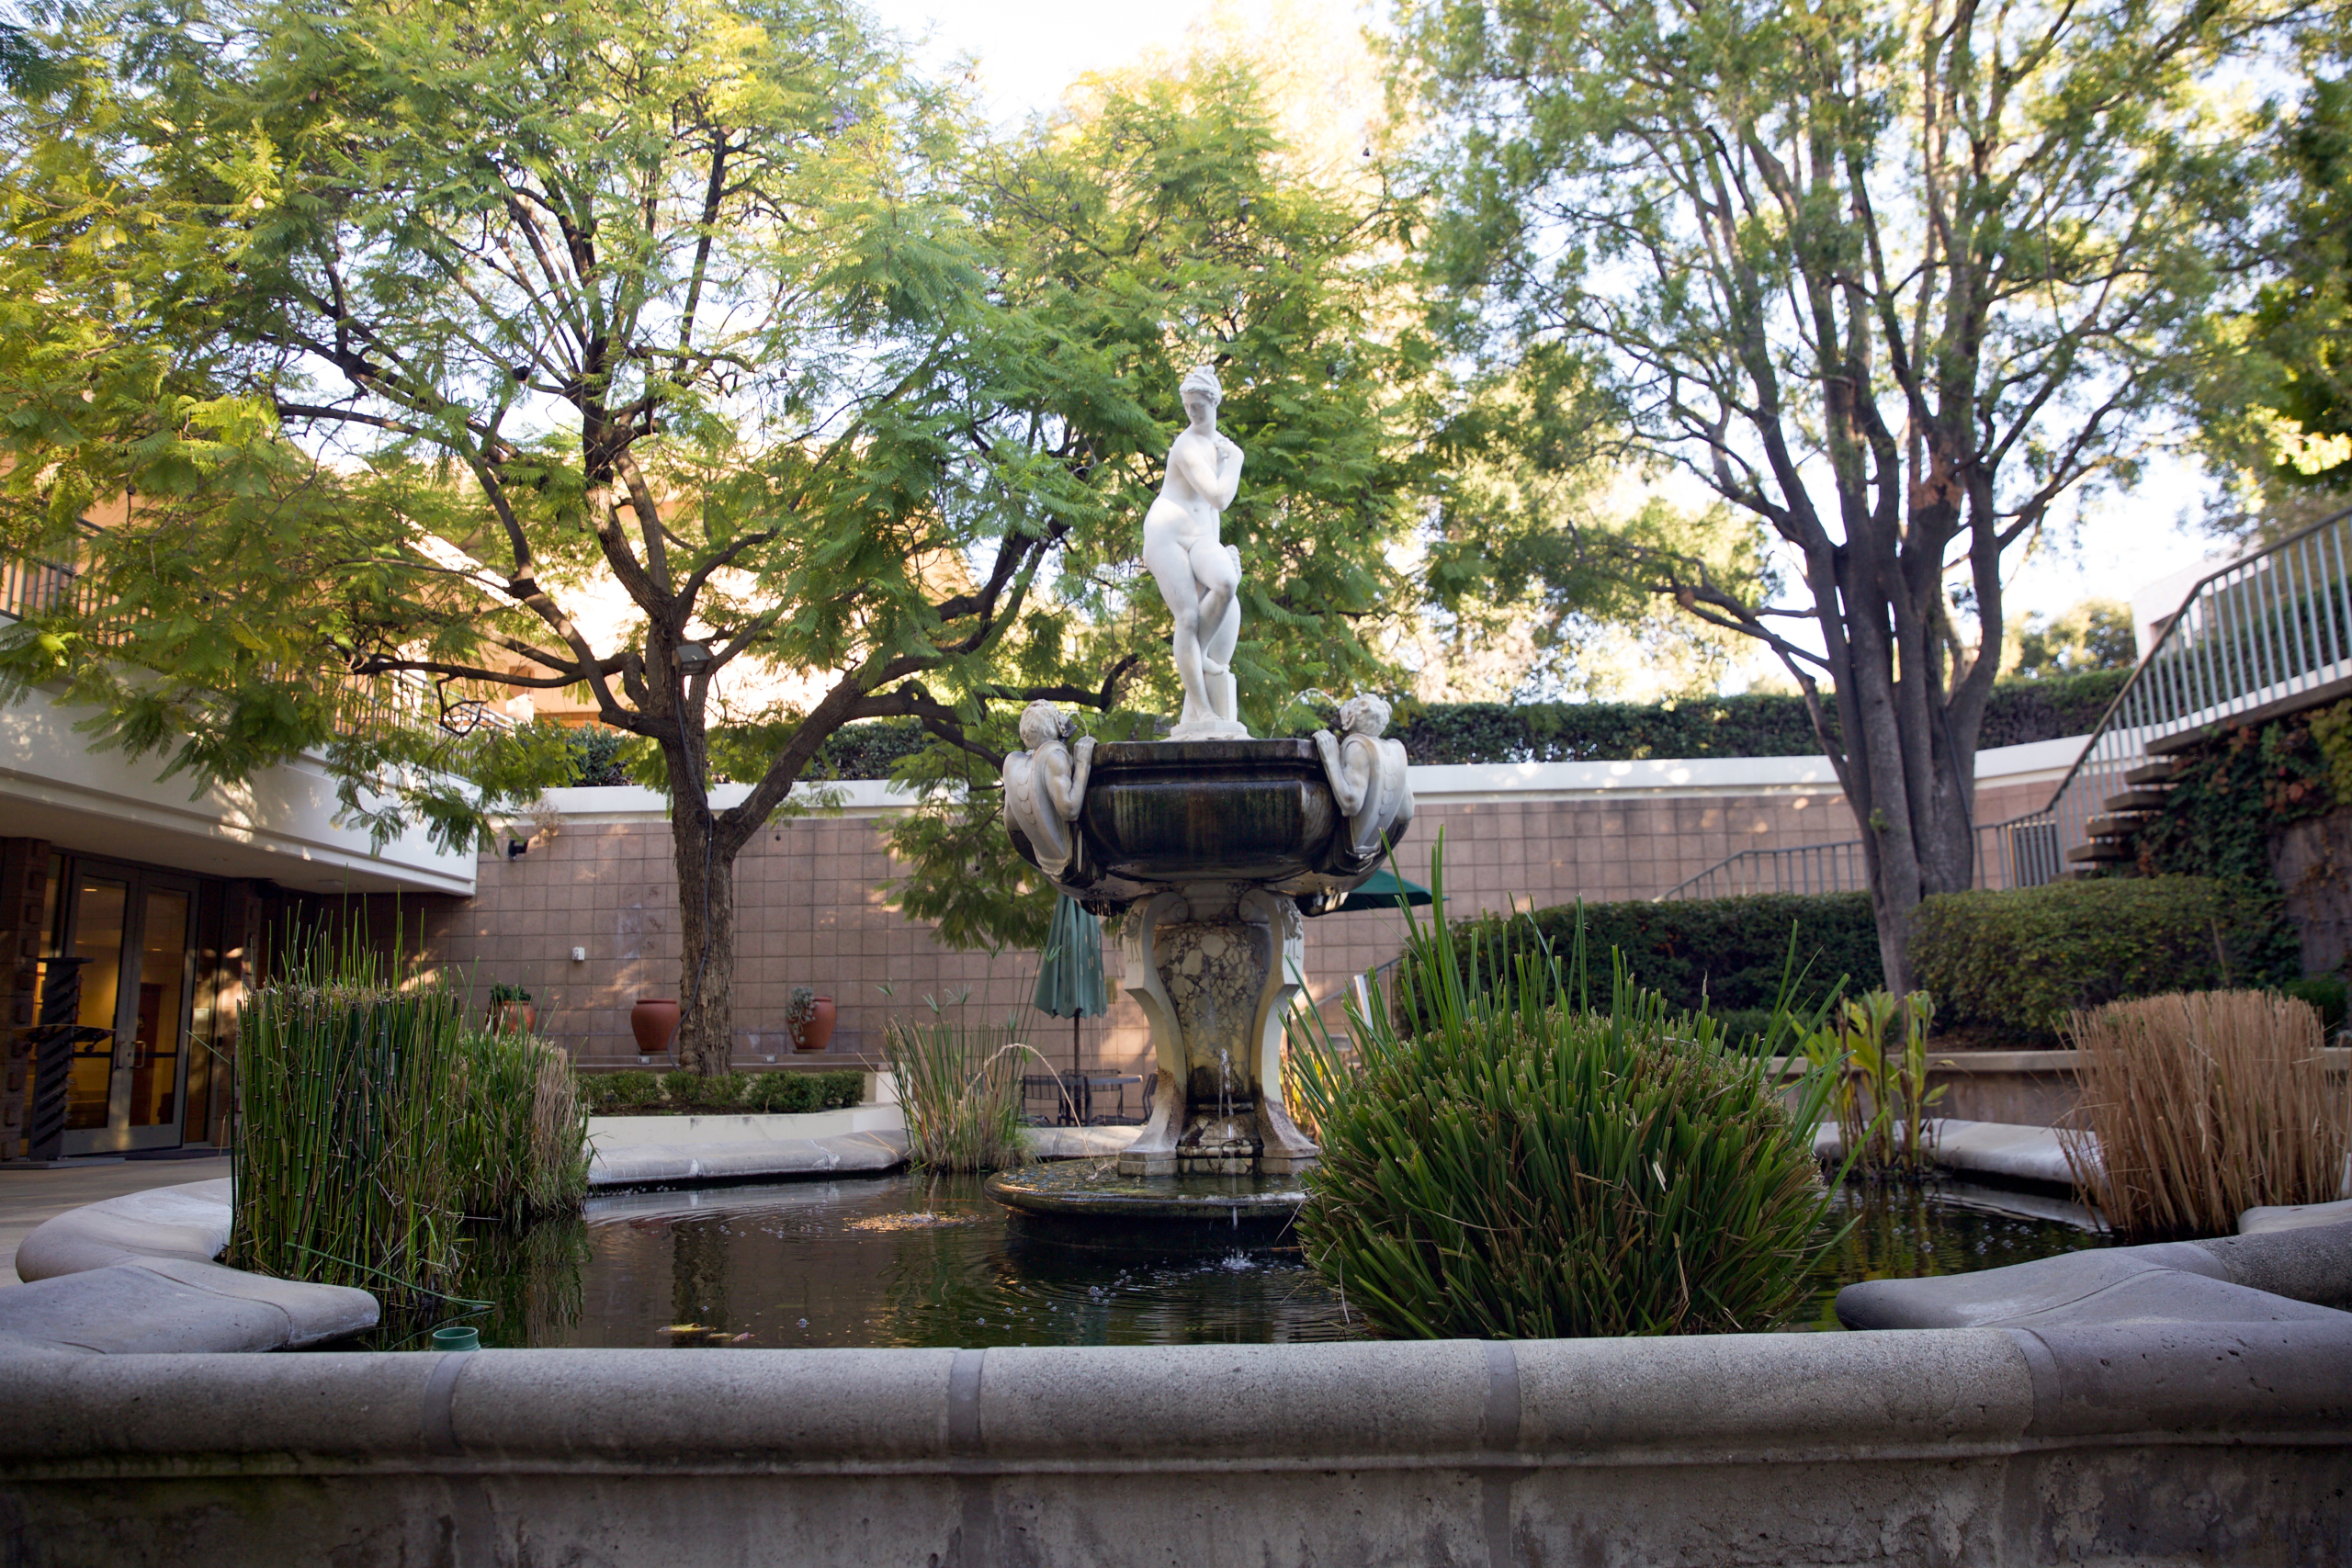 A fountain topped with a statue of a woman.